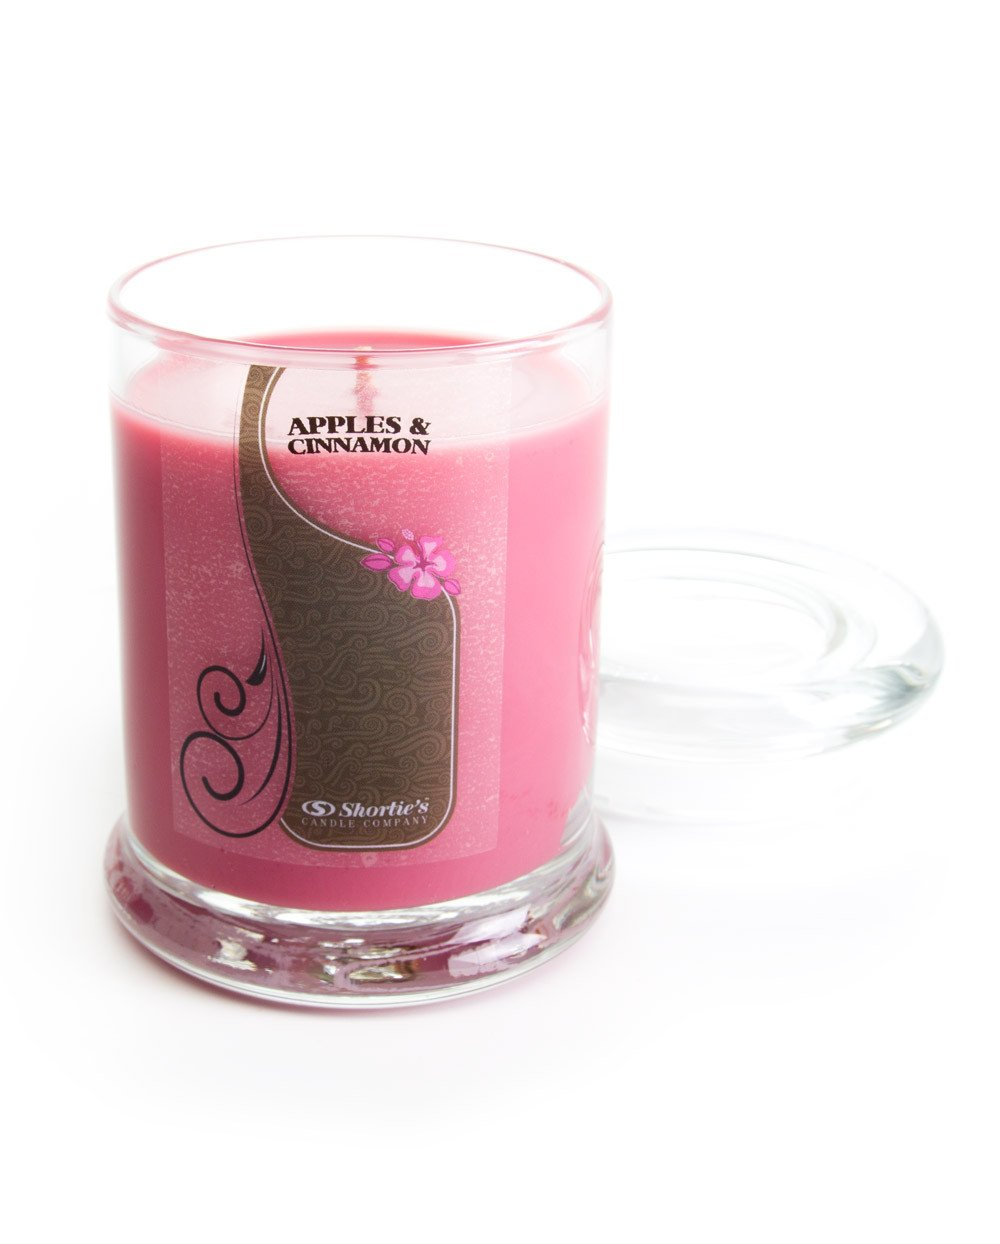 Apples & Cinnamon Candles - Small Dark Red 6.5 Oz. Highly Scented Jar Candle - Made with Natural Oils - Bakery & Food Collection